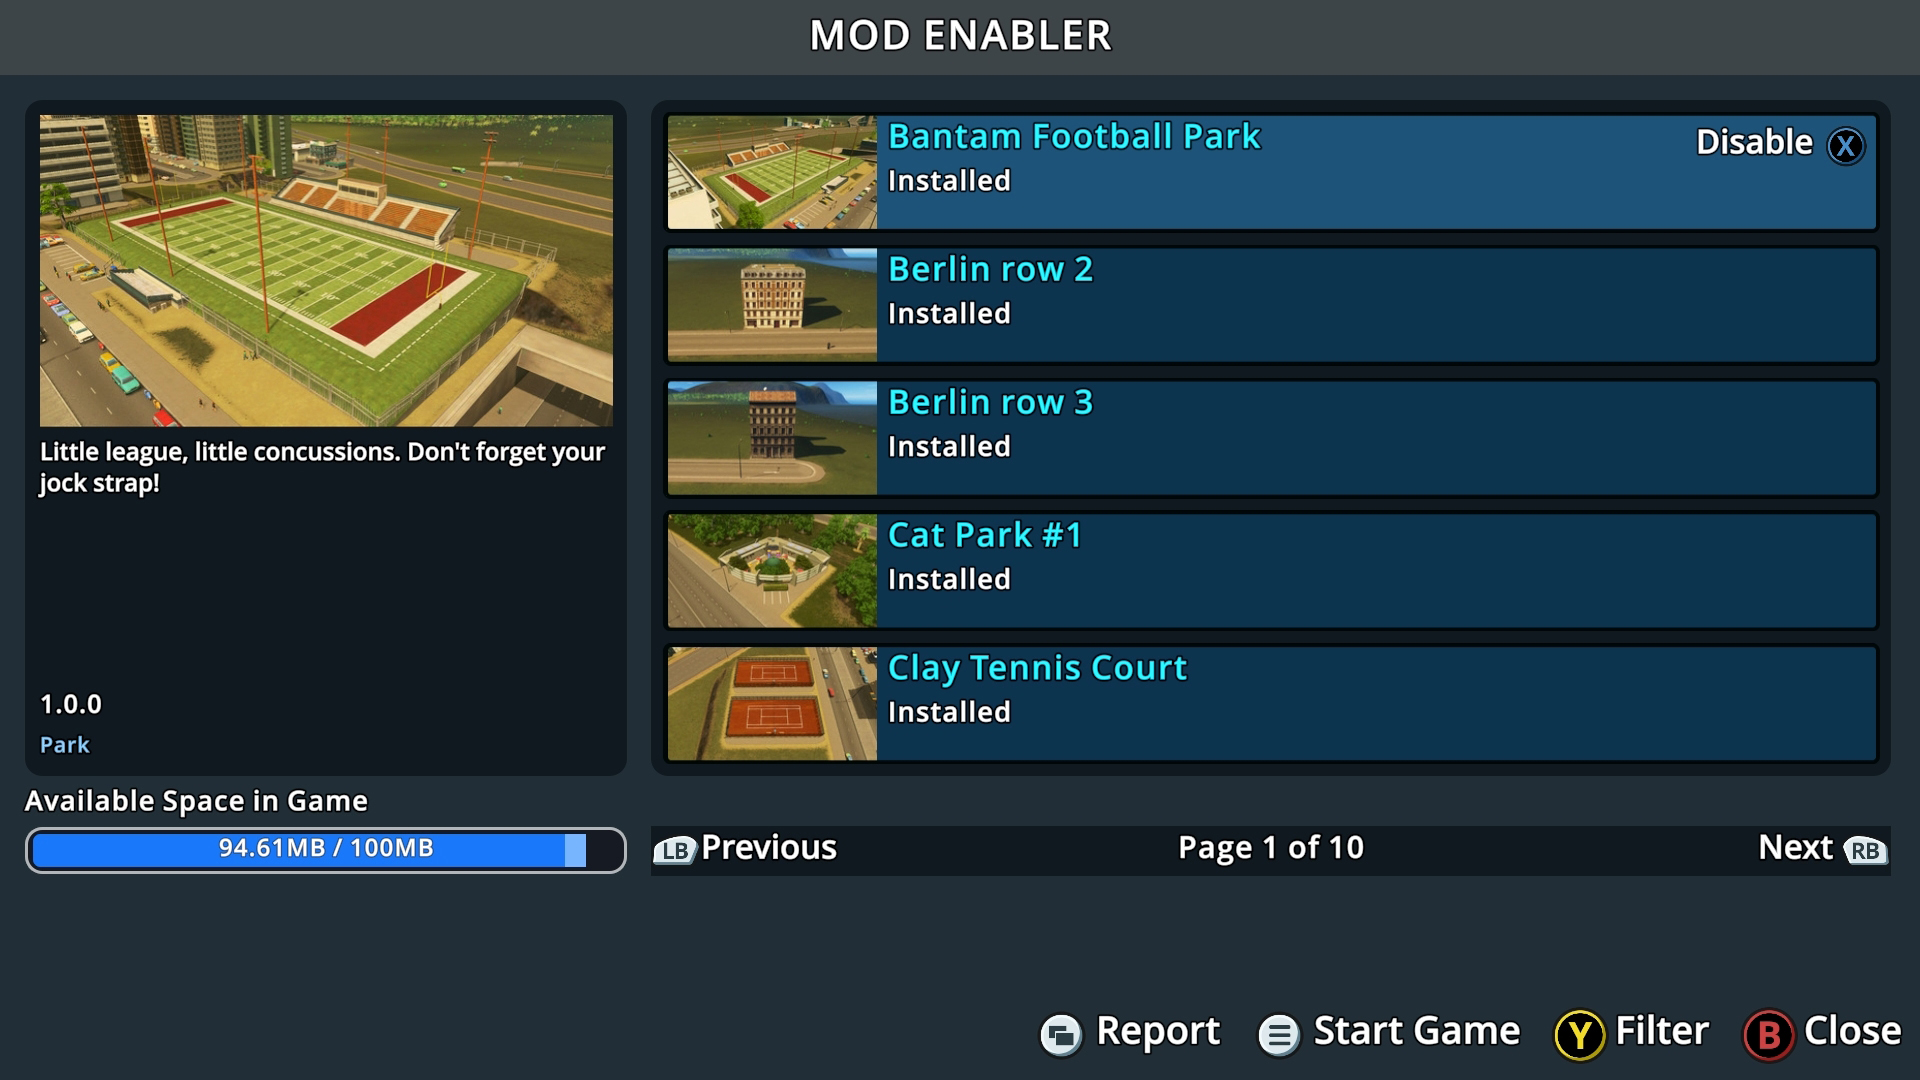 The day is finally here! Mod content is now available for